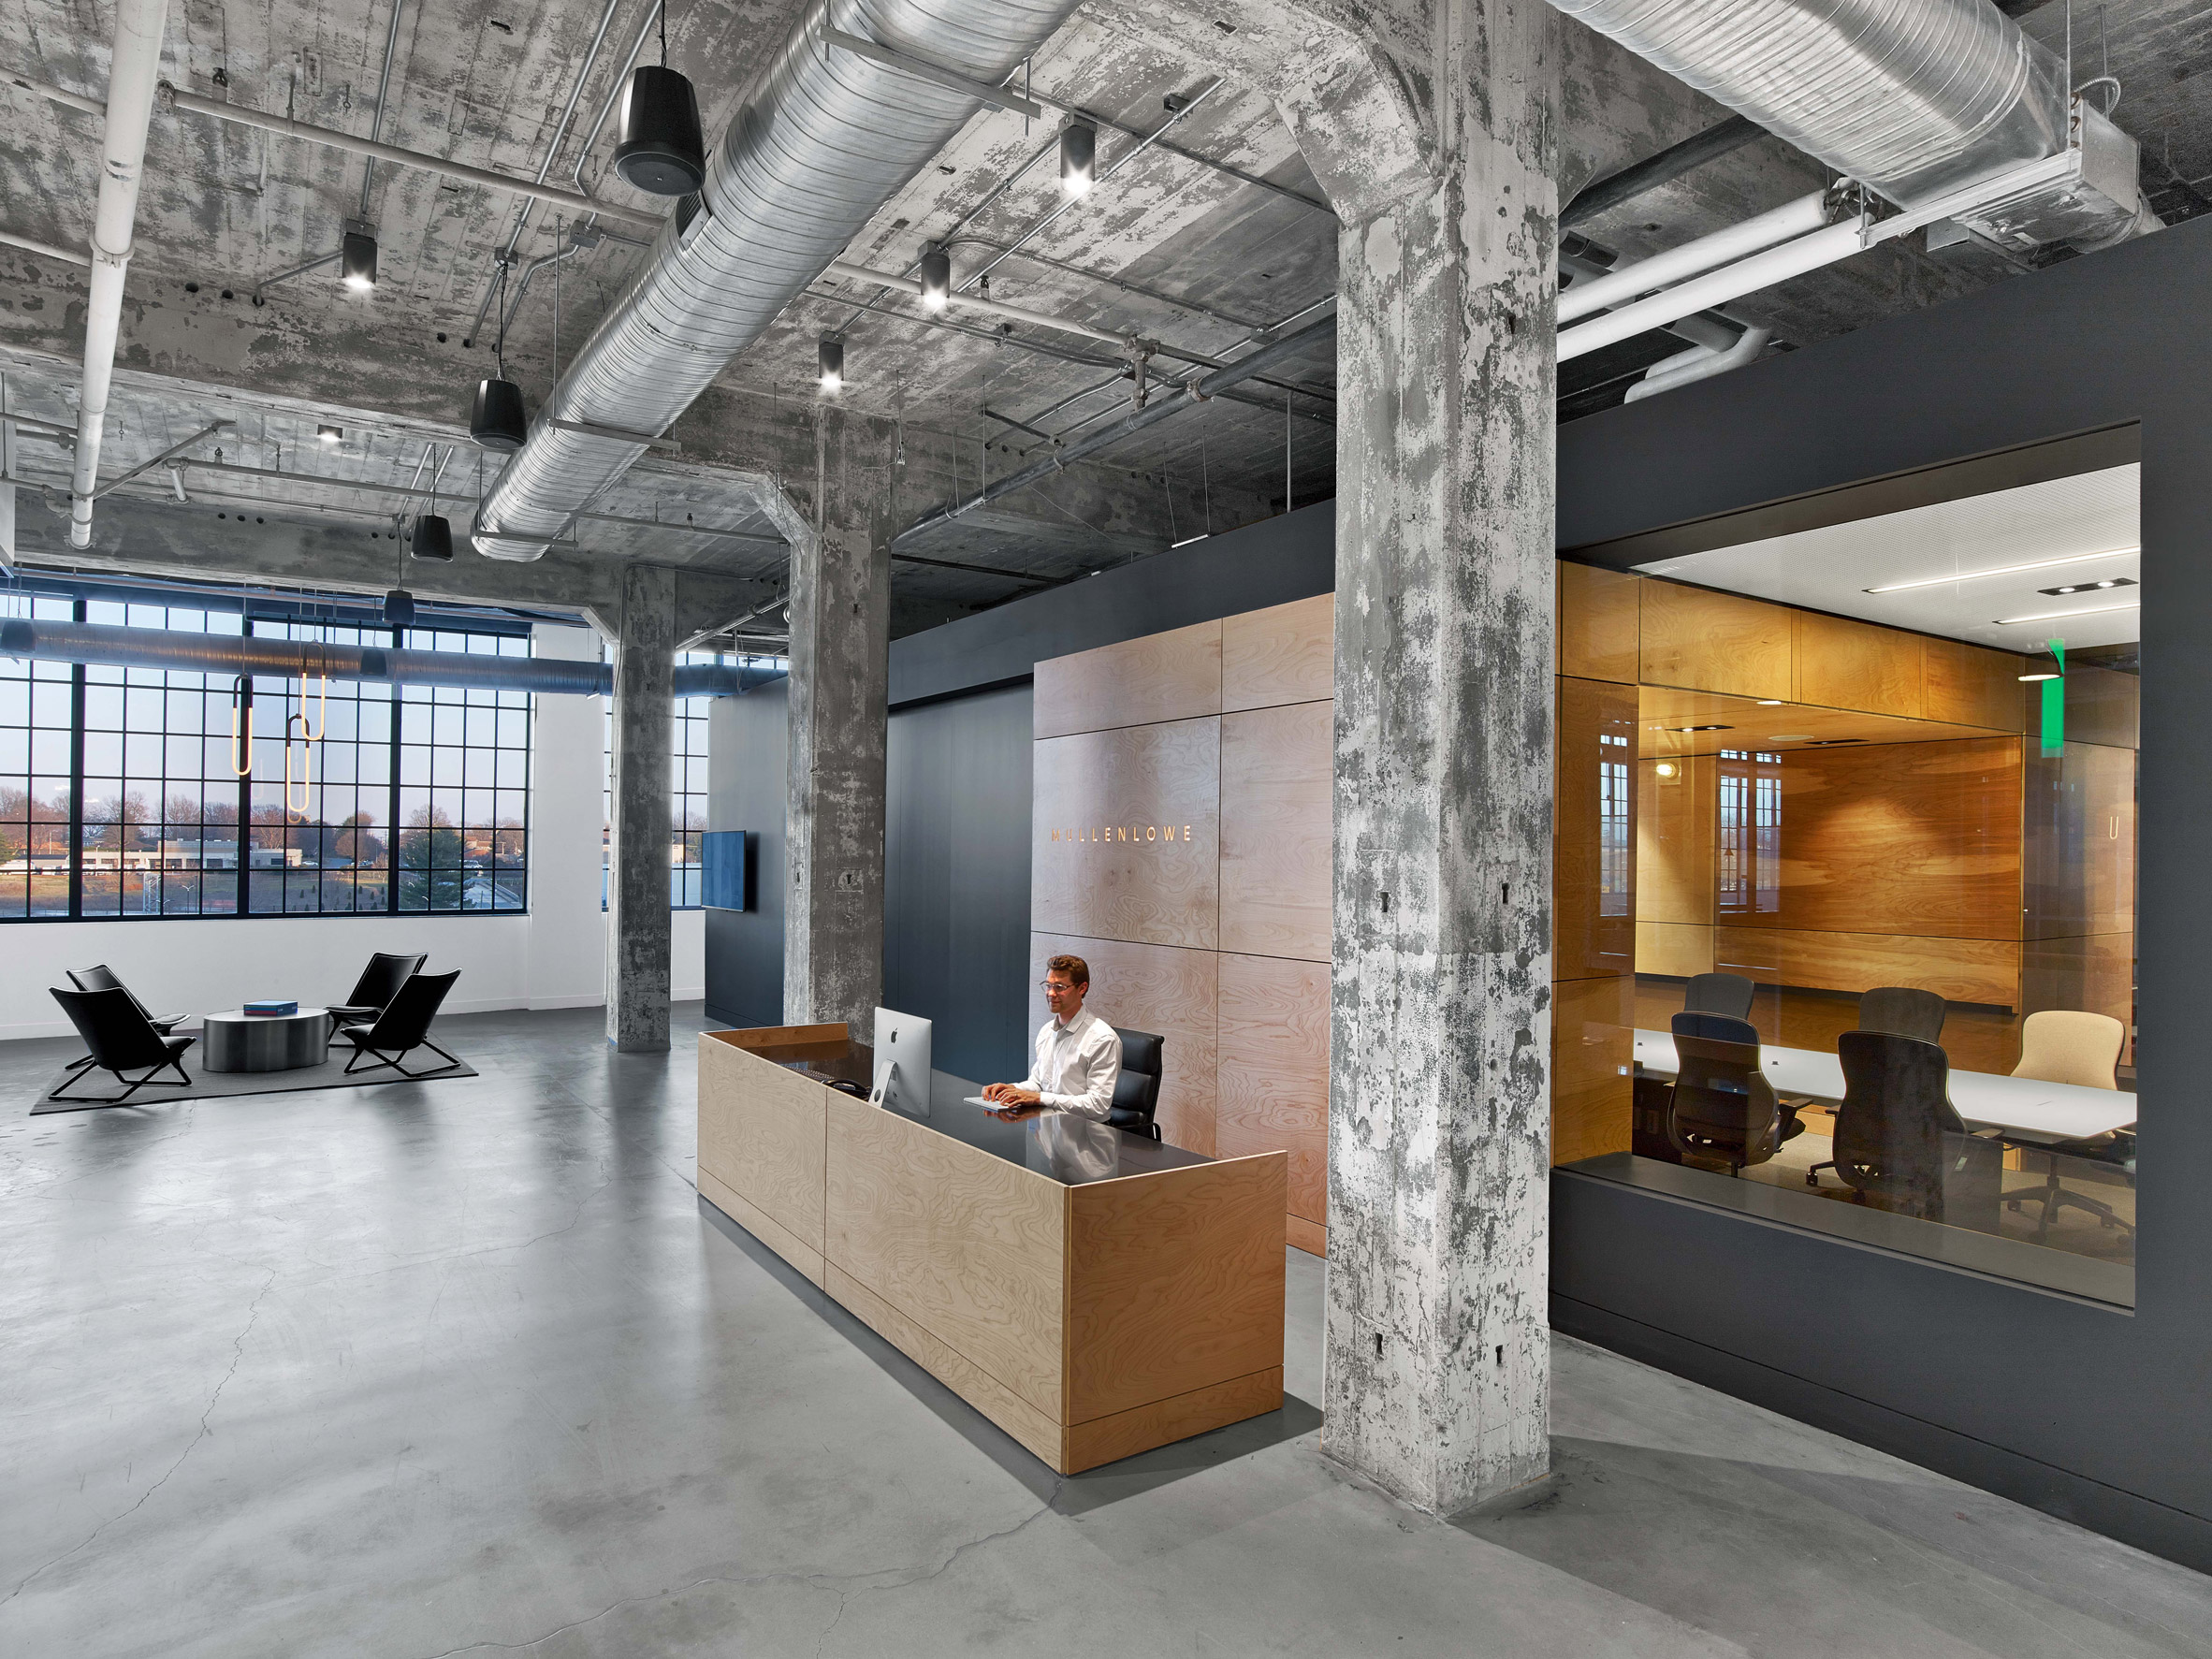 Tpg architecture adapts tobacco factory into ad agency for Ad agency office design